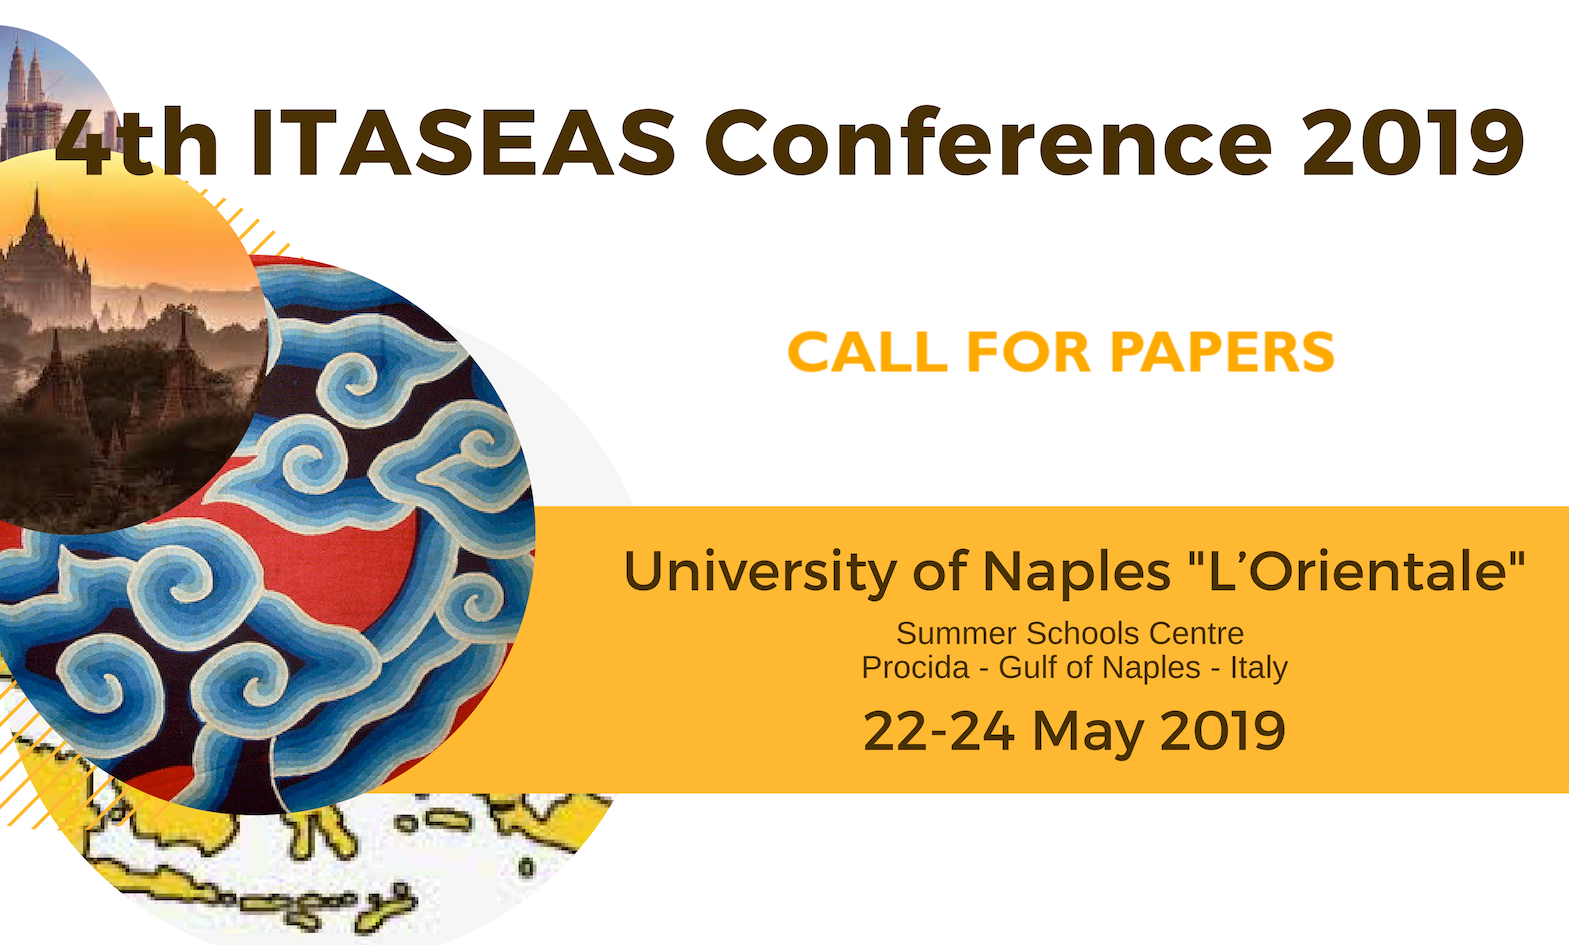 CALL FOR PAPERS 4TH ITASEAS CONFERENCE